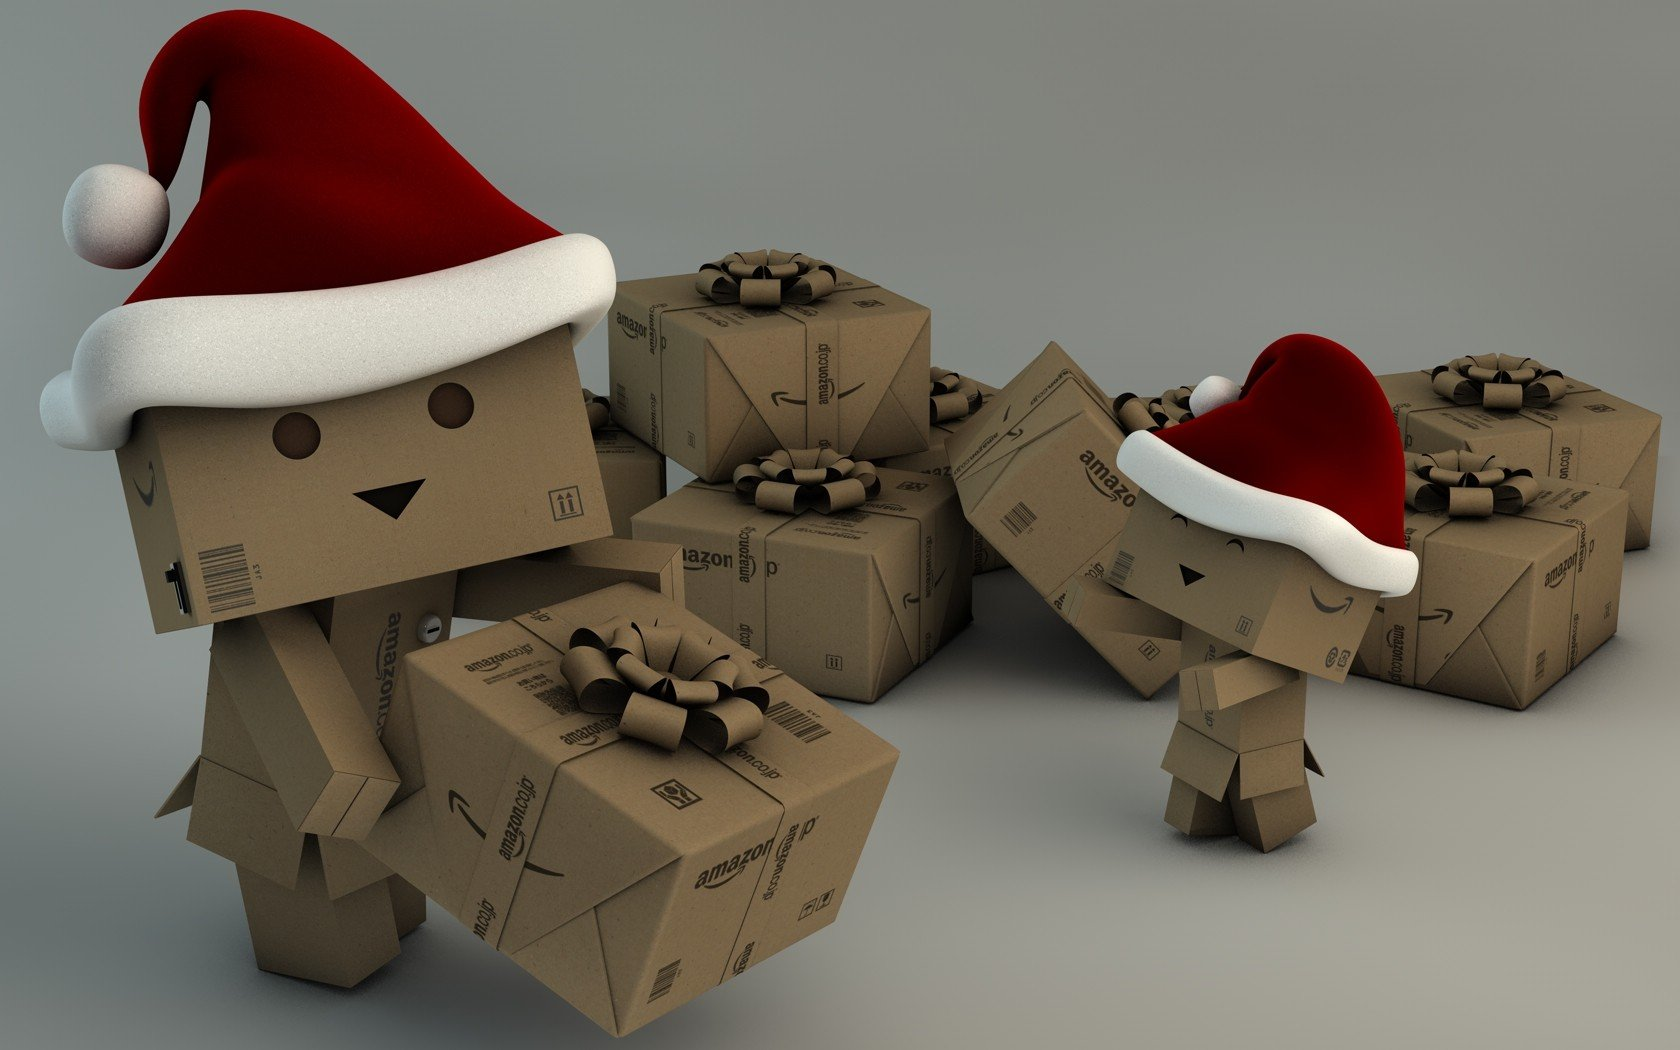 christmas danboard amazon hats santa grey background santa hat wallpaper 1680x1050 321297 wallpaperup - Amazon Christmas